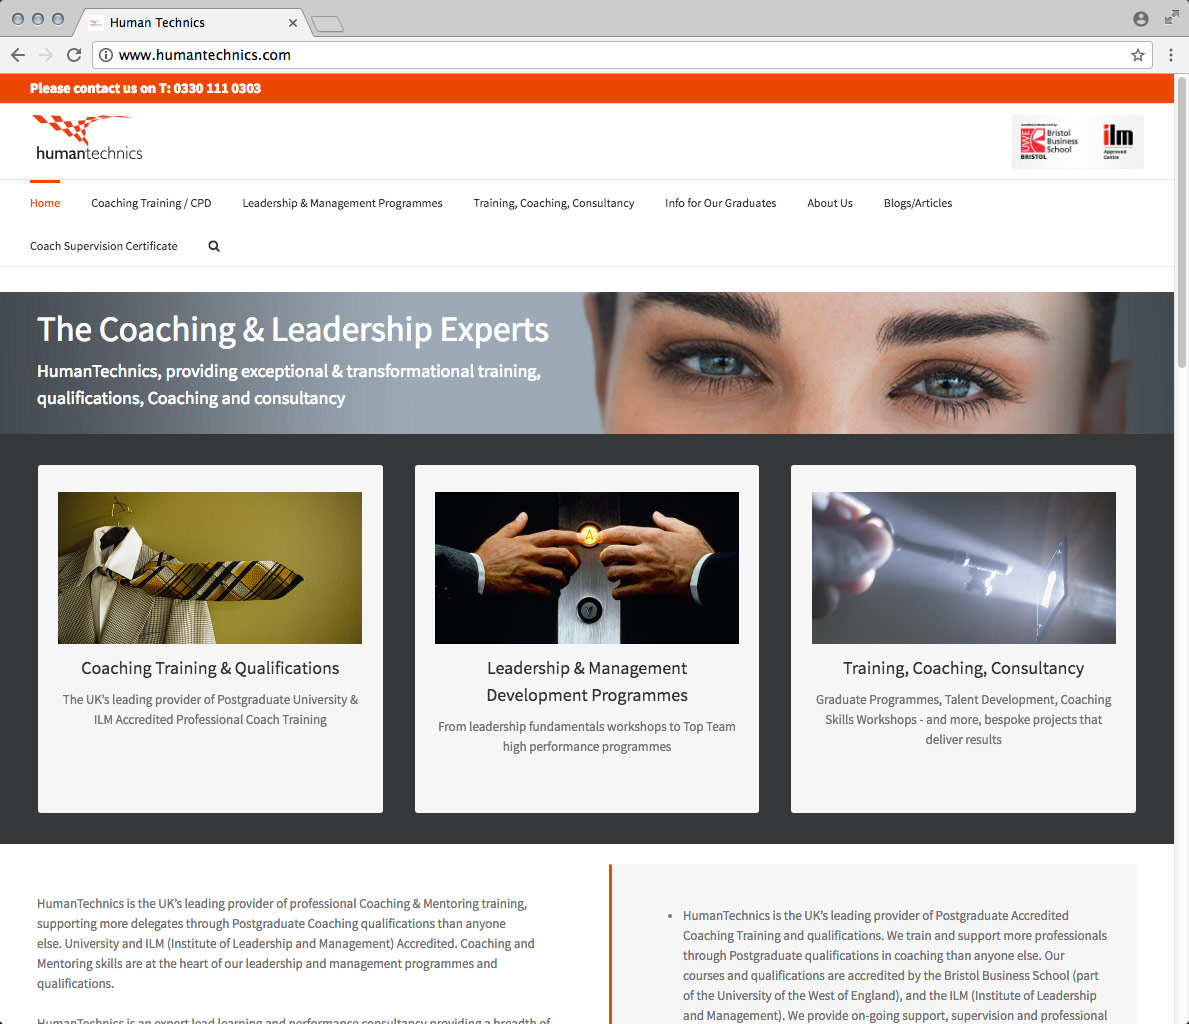 Website Development, Website Design and CMS. A Wordpress Website for Human Technics.